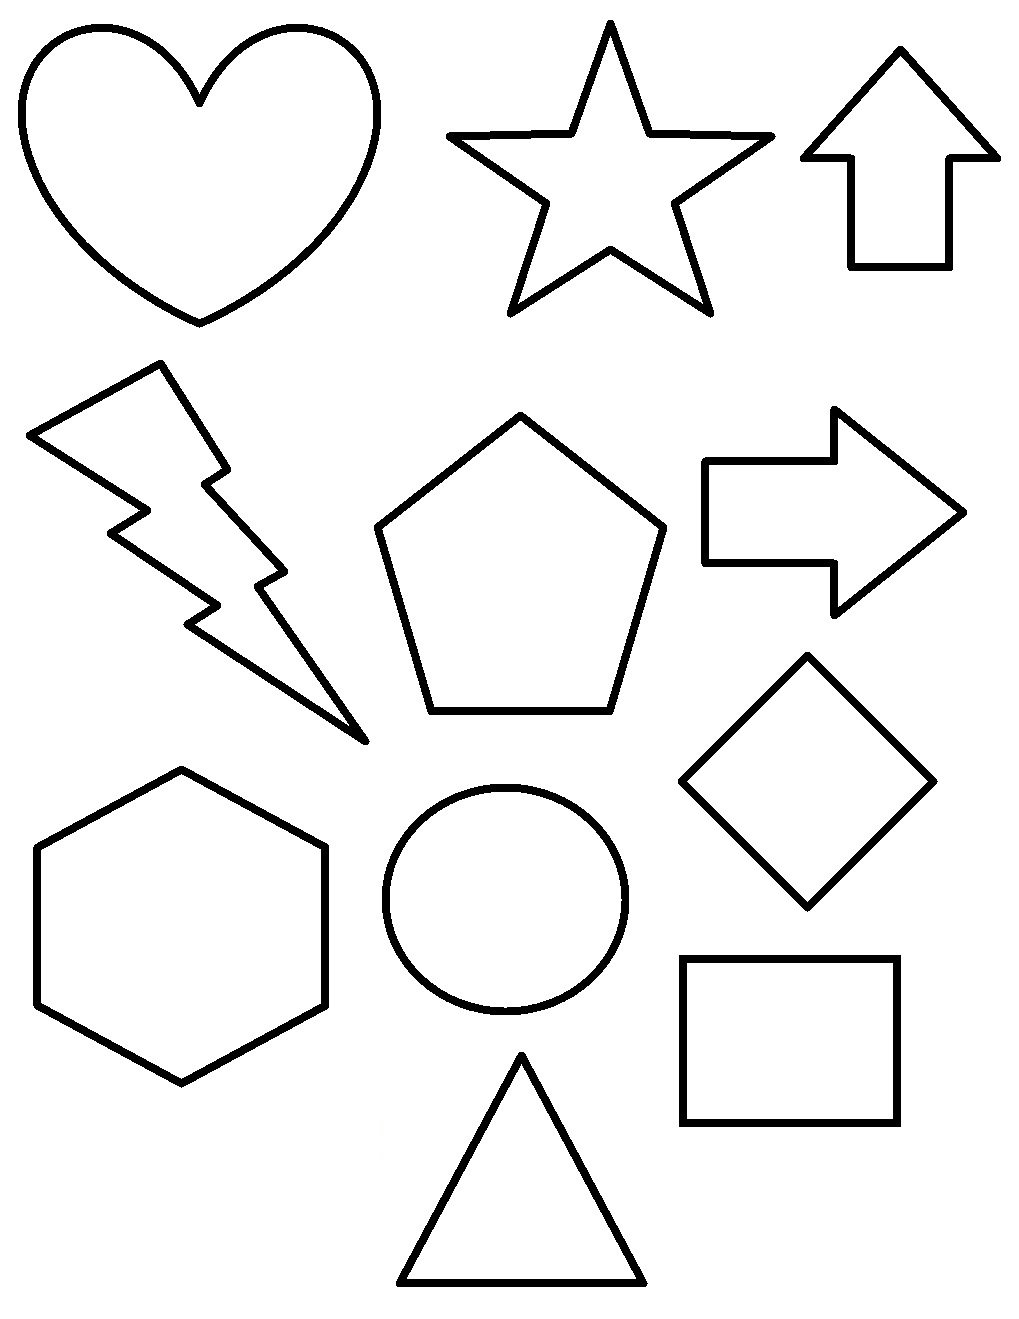 To Print Shapes Coloring Pages 24 For Seasonal Colouring Pages